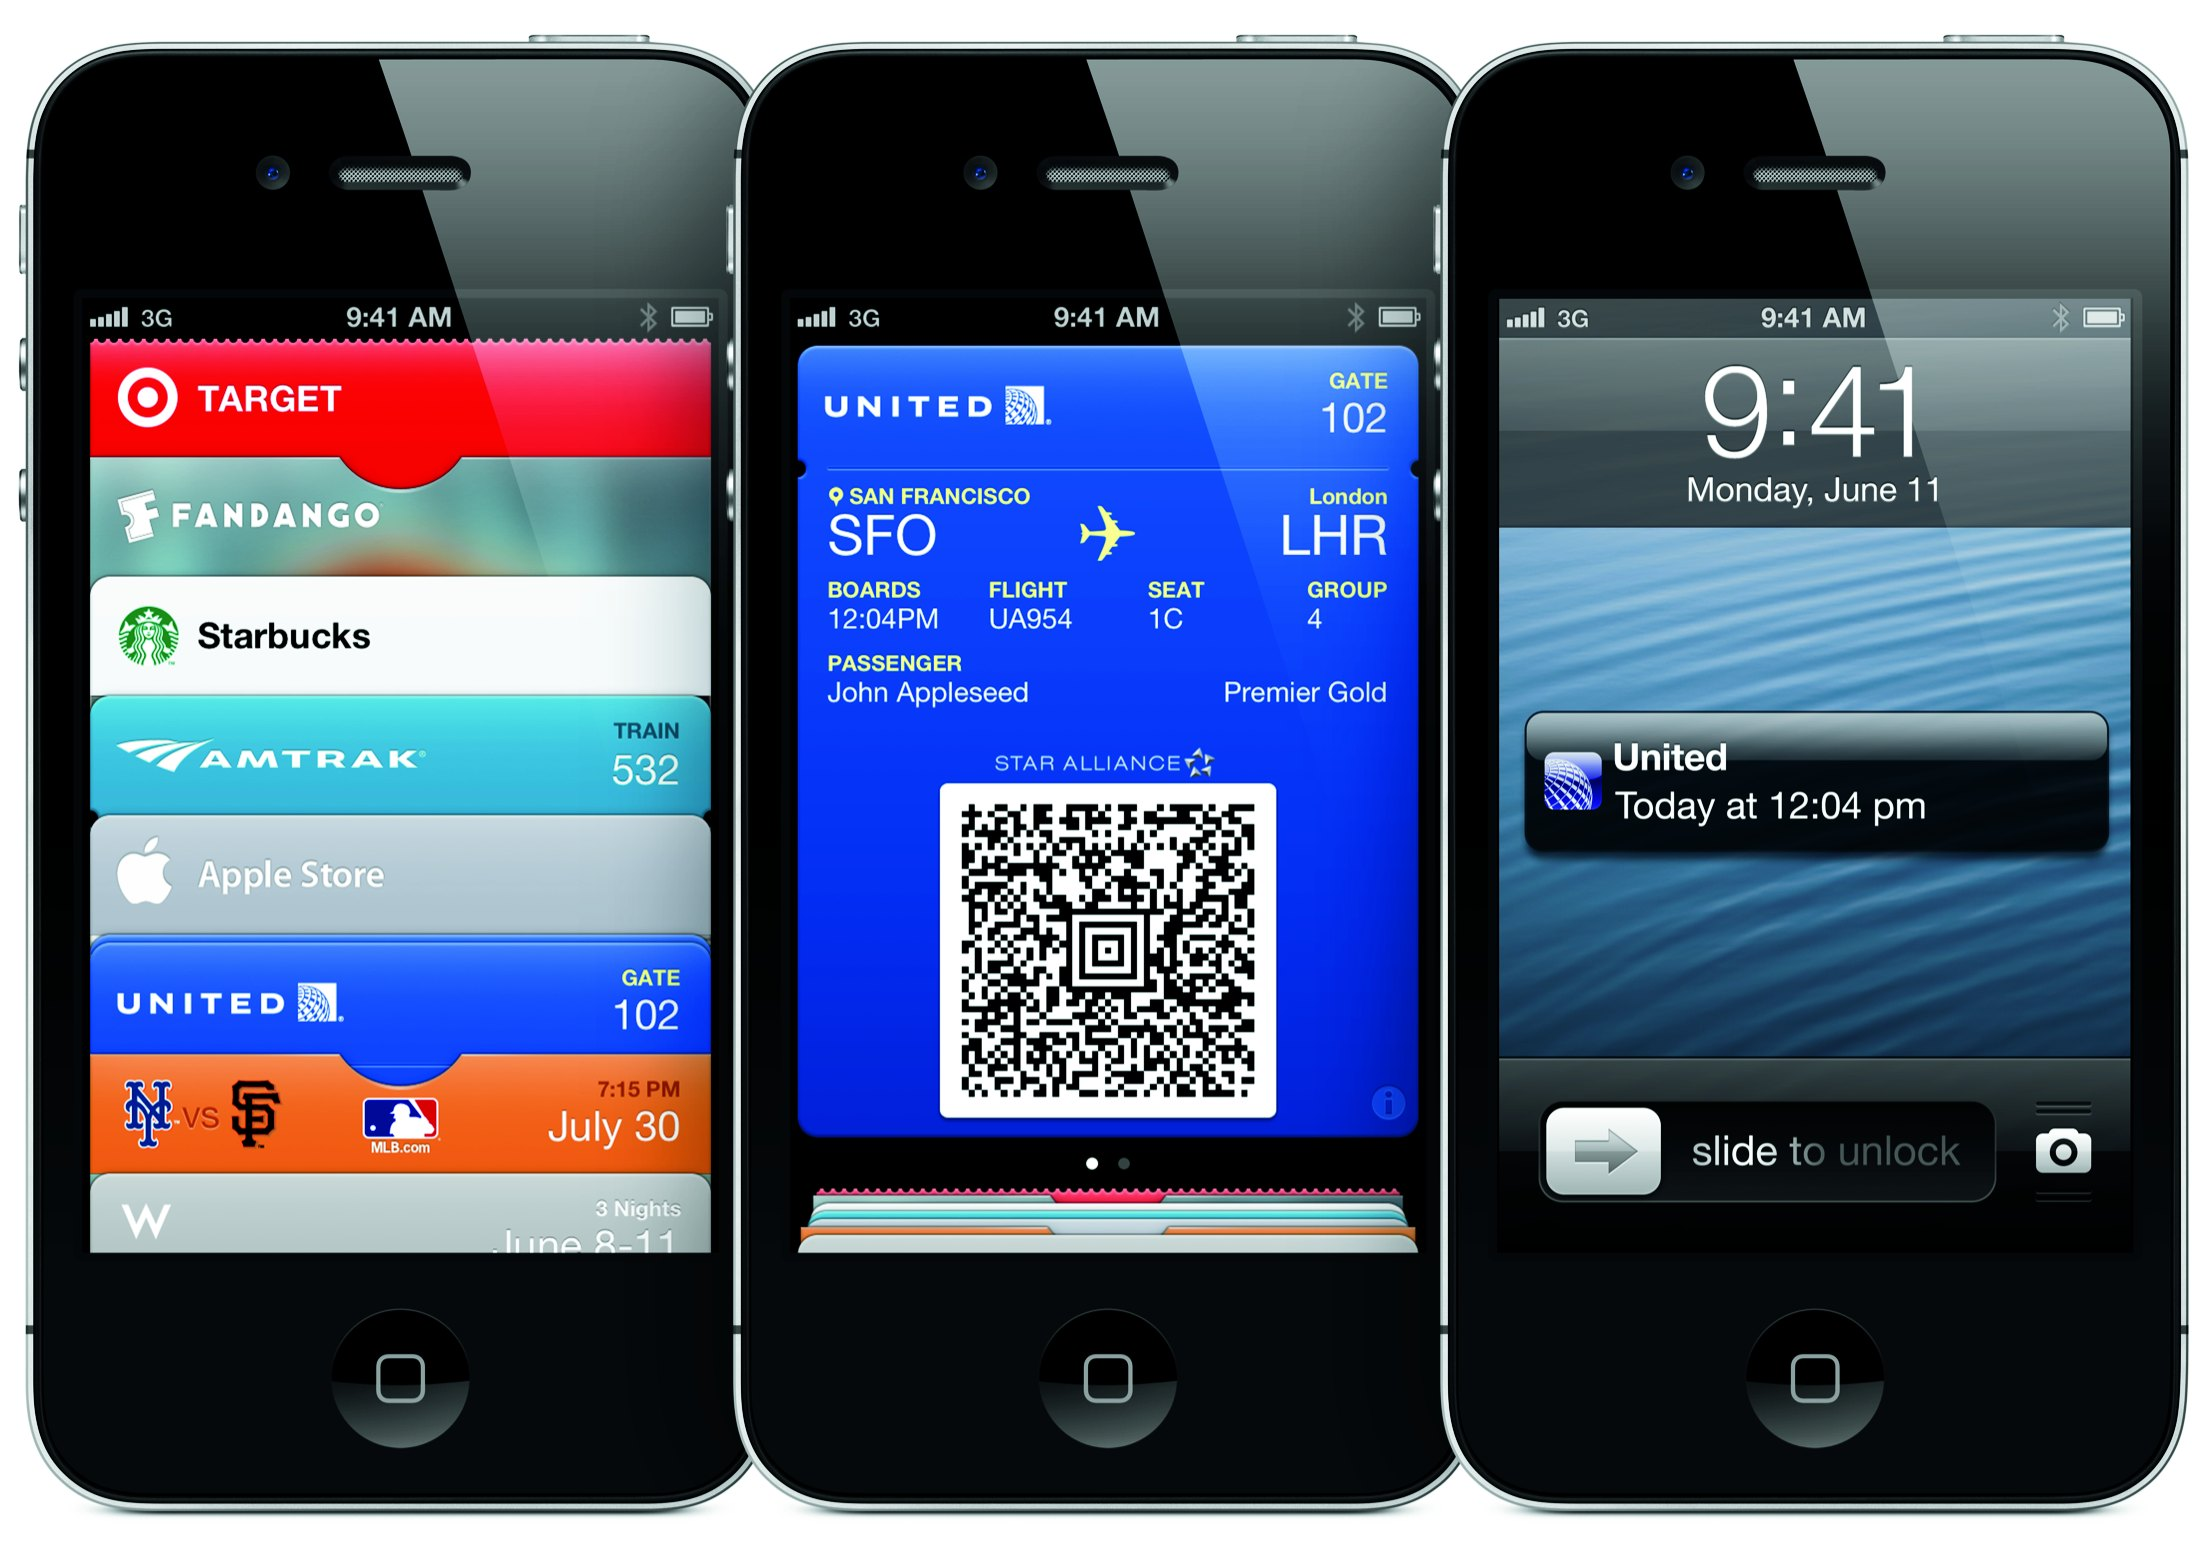 Jun 08, · Apple Rebrands Passbook To Wallet Jordan Crook @jordanrcrook / 3 years Apple just introduced a few new updates to the Apple Pay service at the WWDC conference in San Francisco.